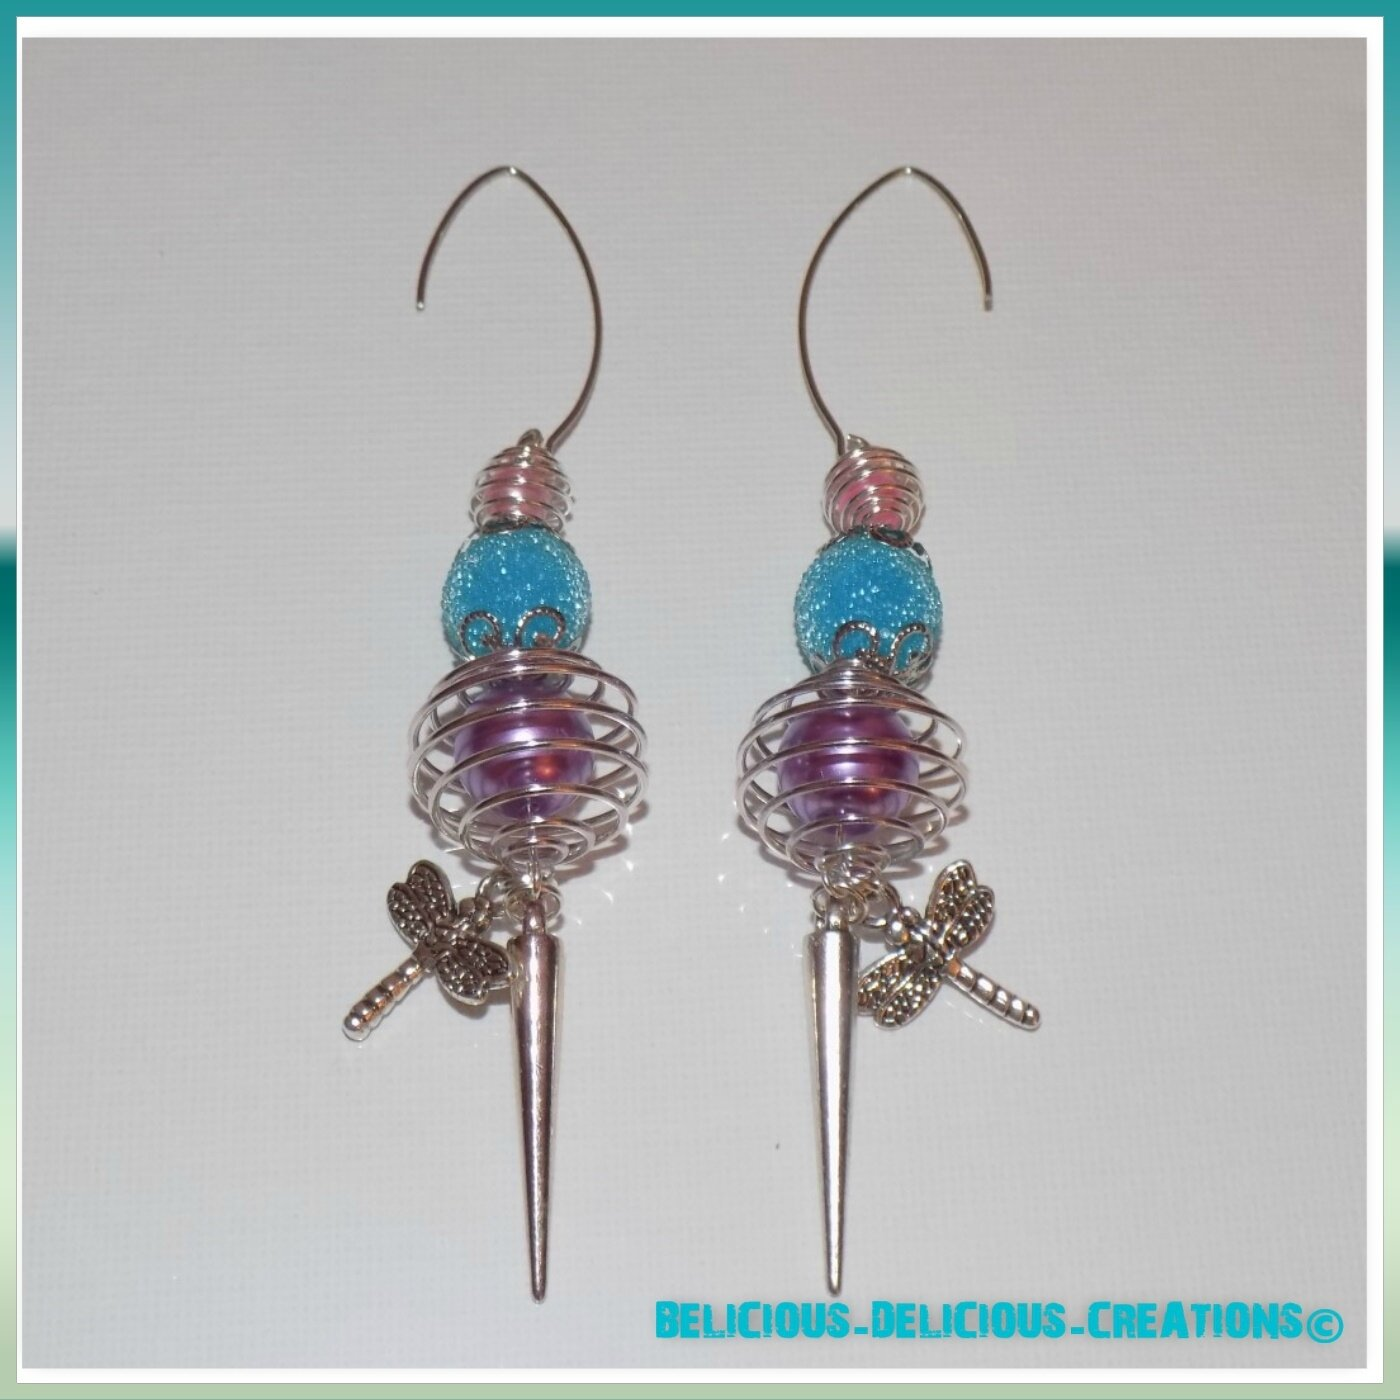 Original Boucles d'oreilles !! CAGED !! en metal argente T: 7.5cm BELICIOUS-DELICIOUS-CREATION